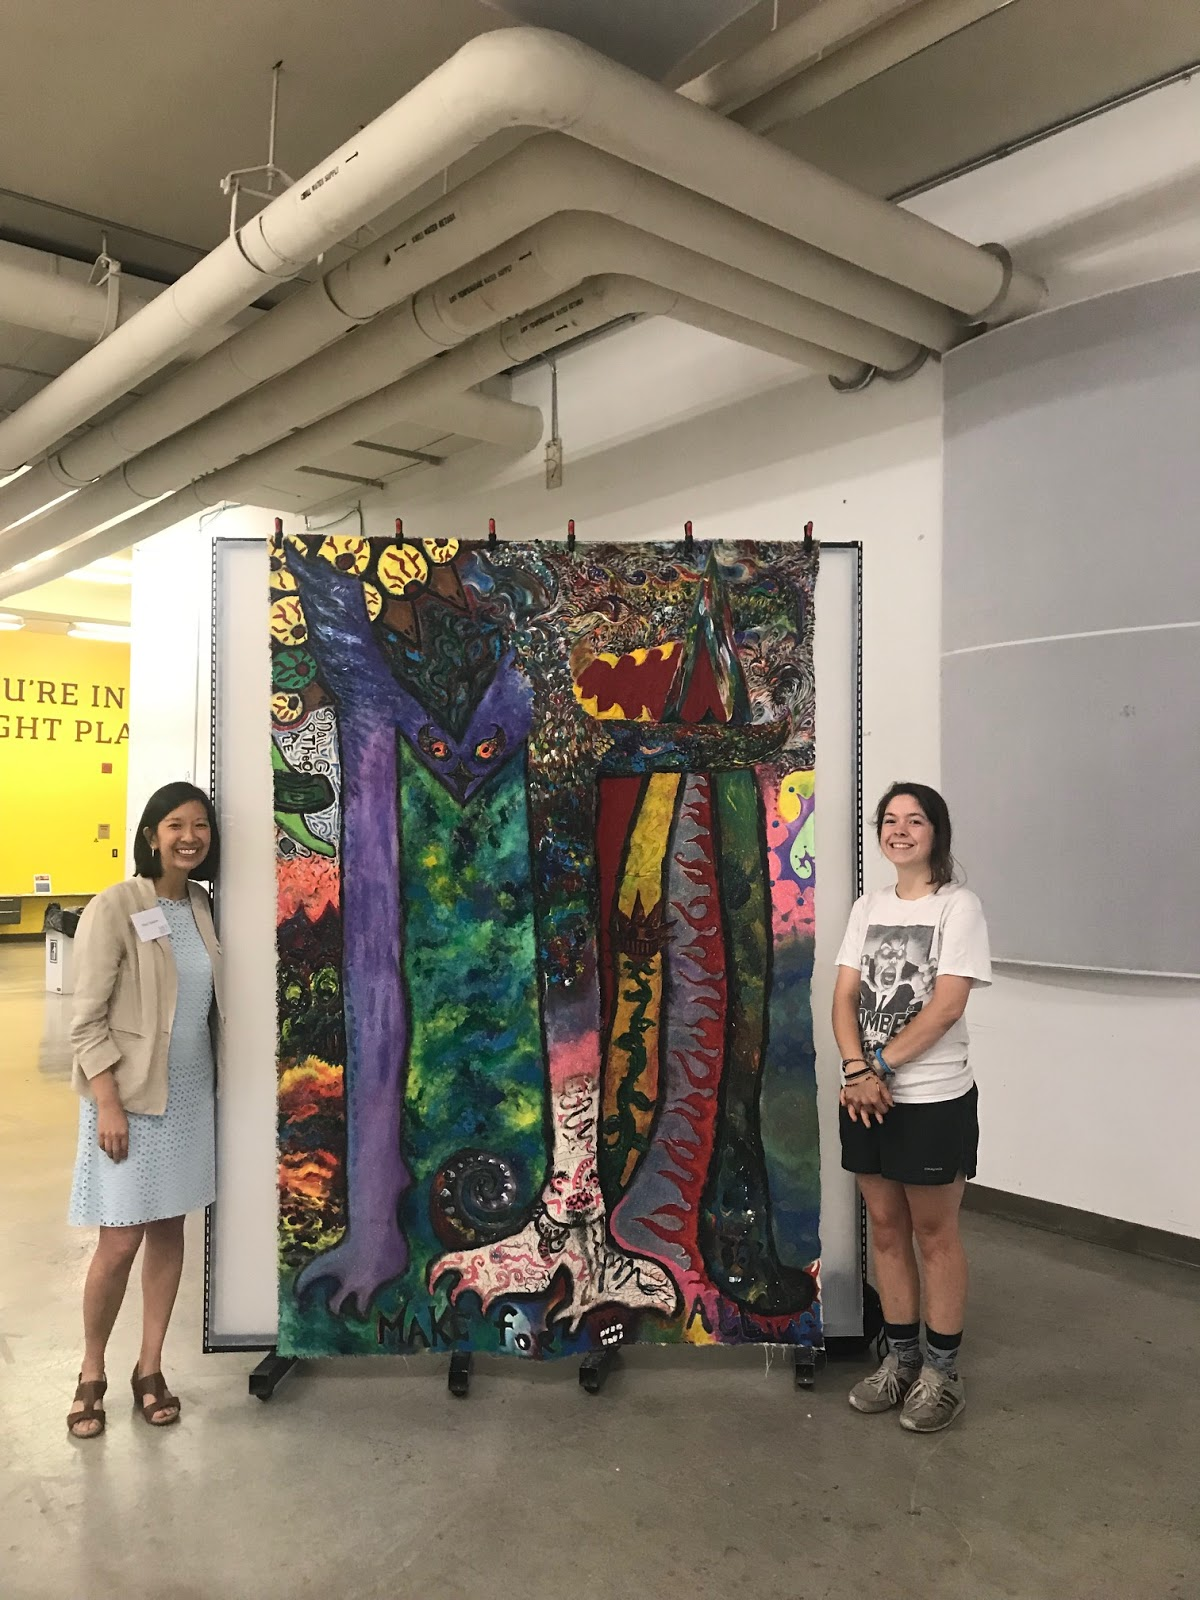 17-year old Chattanooga artist and maker Madeline Fazio (right) created this amazing piece which represents her interpretation of what Make For All means to her. Pictured here with Stephanie Santoso (left), Director of Maker Initiatives, Citizen Schools.